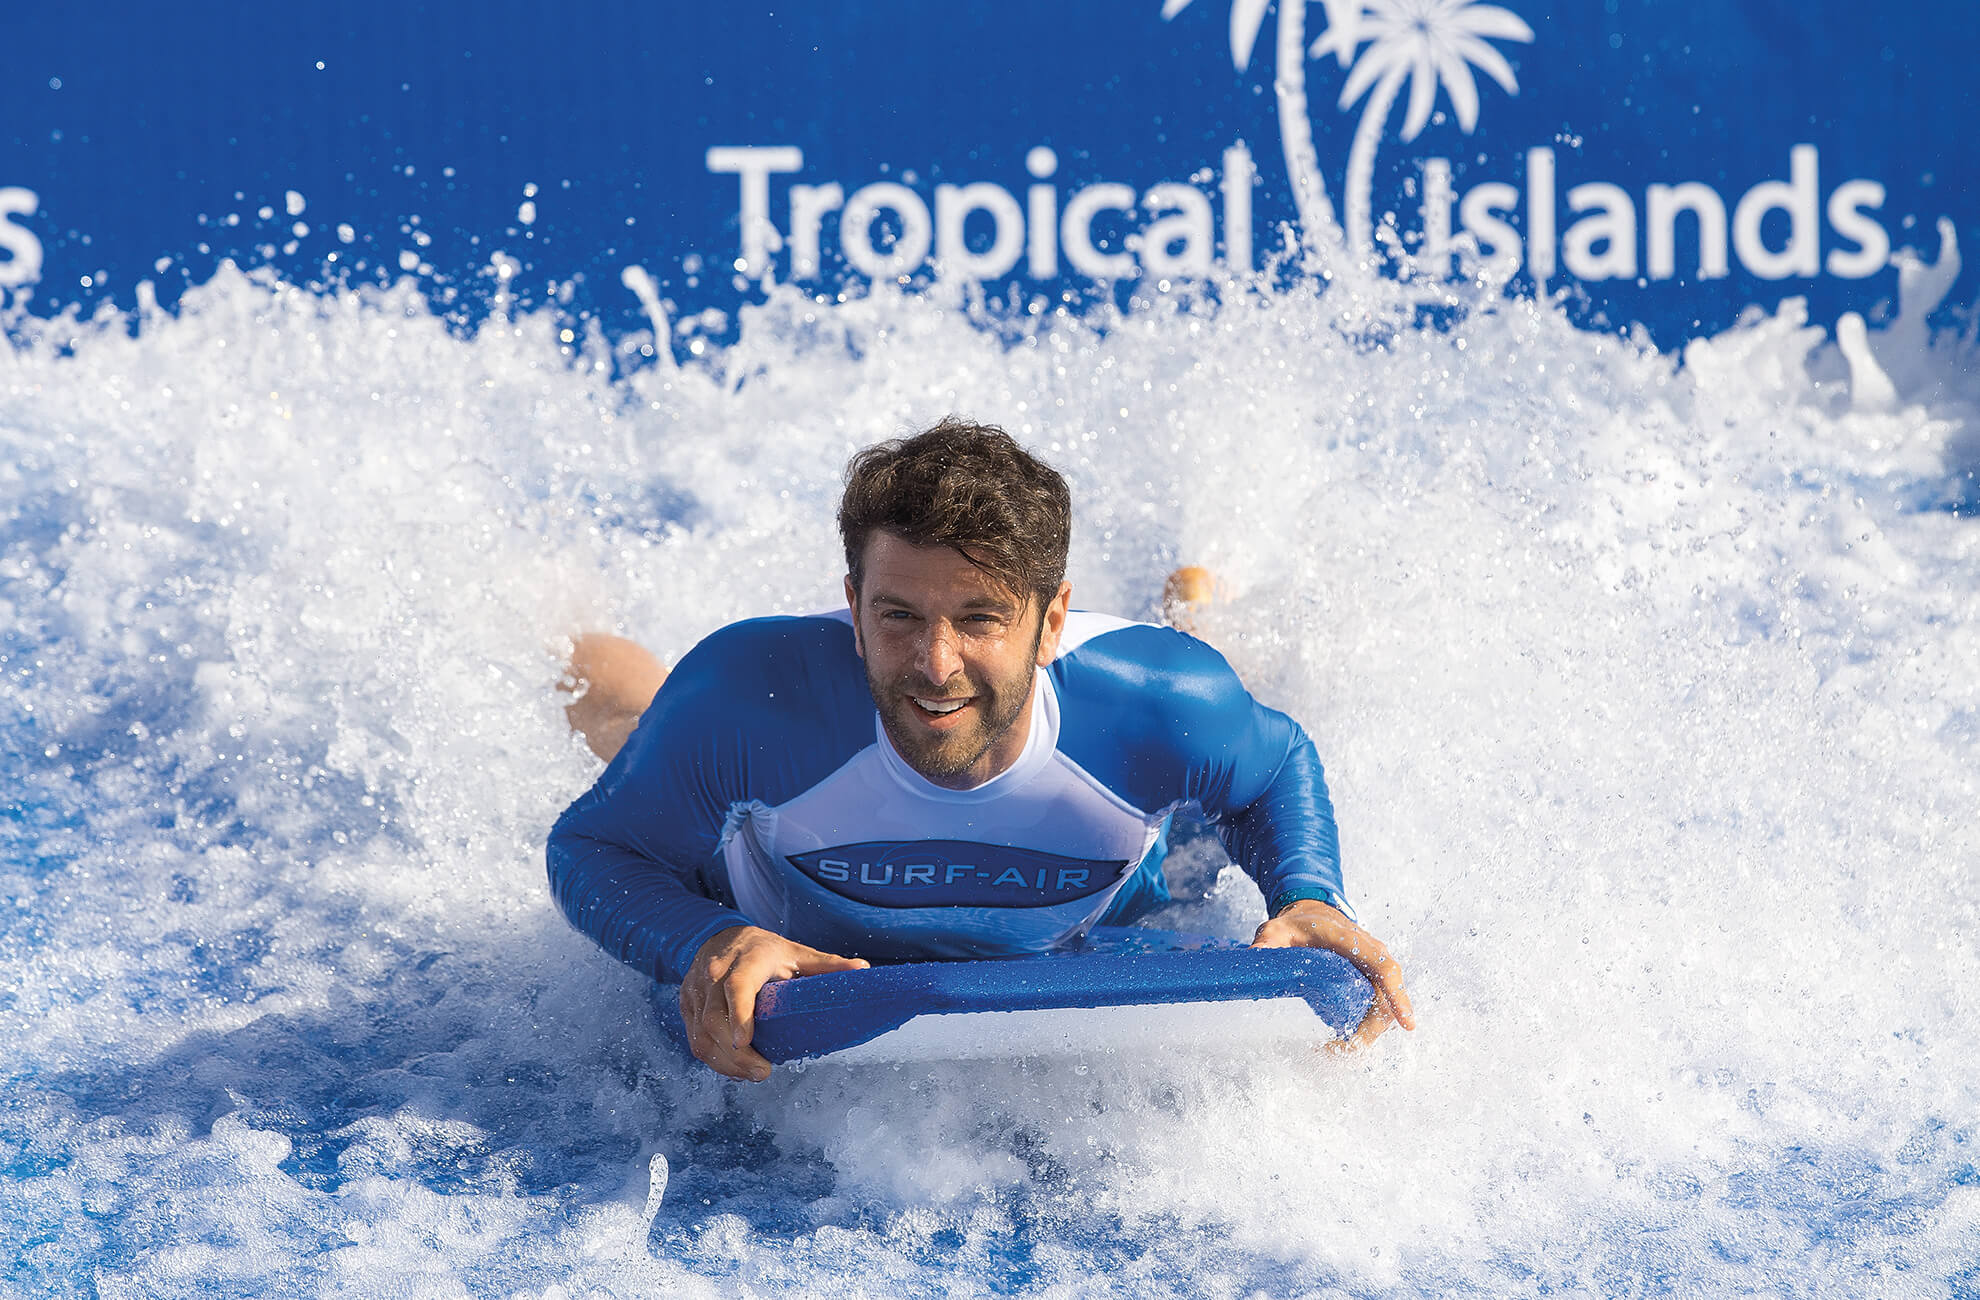 project-tropical-island-_0003_5